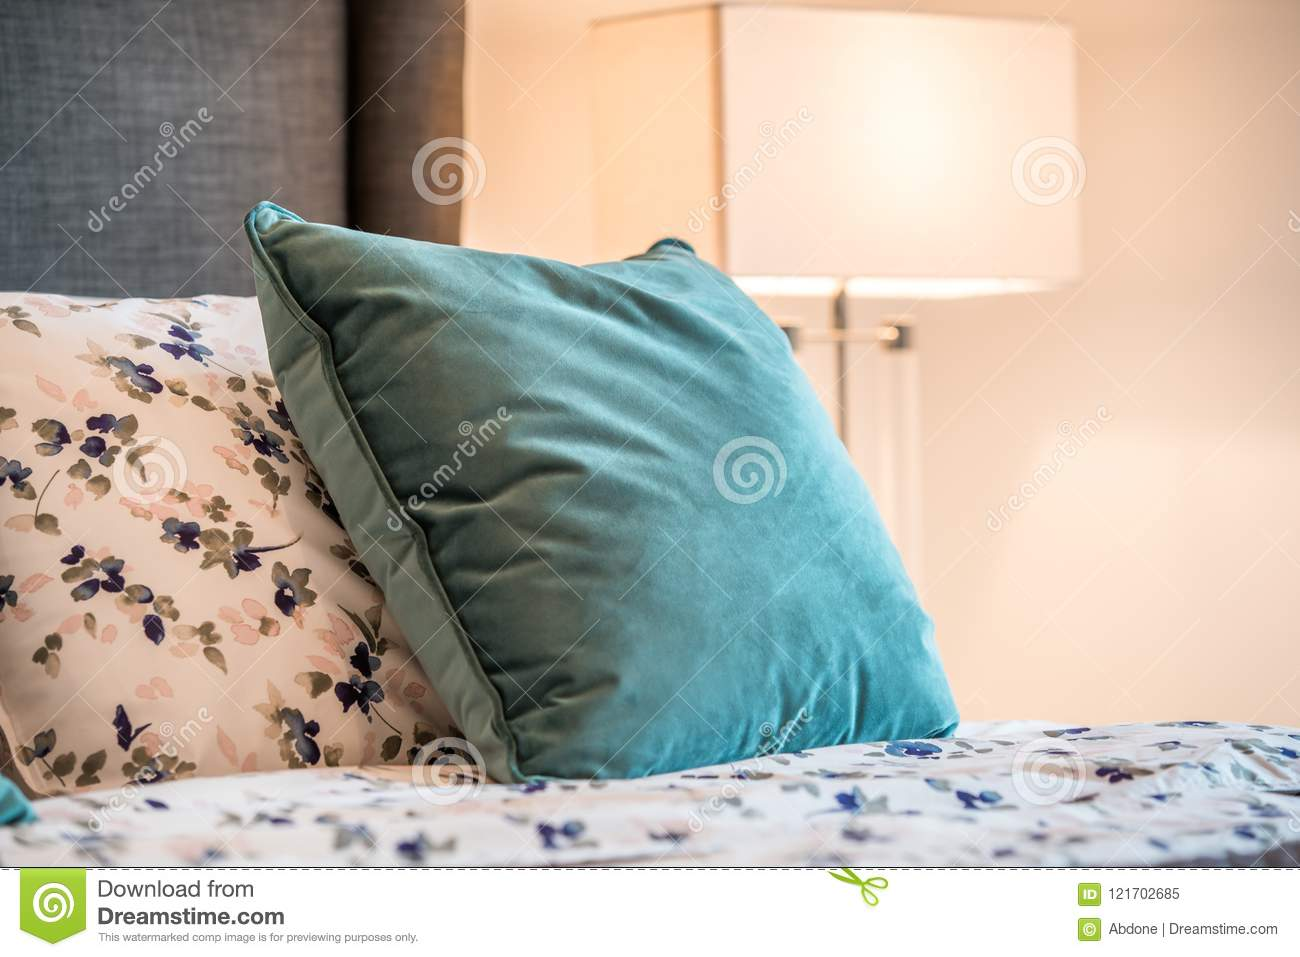 Cozy Decorative Pillows On A Bed Stock Image Image Of Home Cozy 121702685